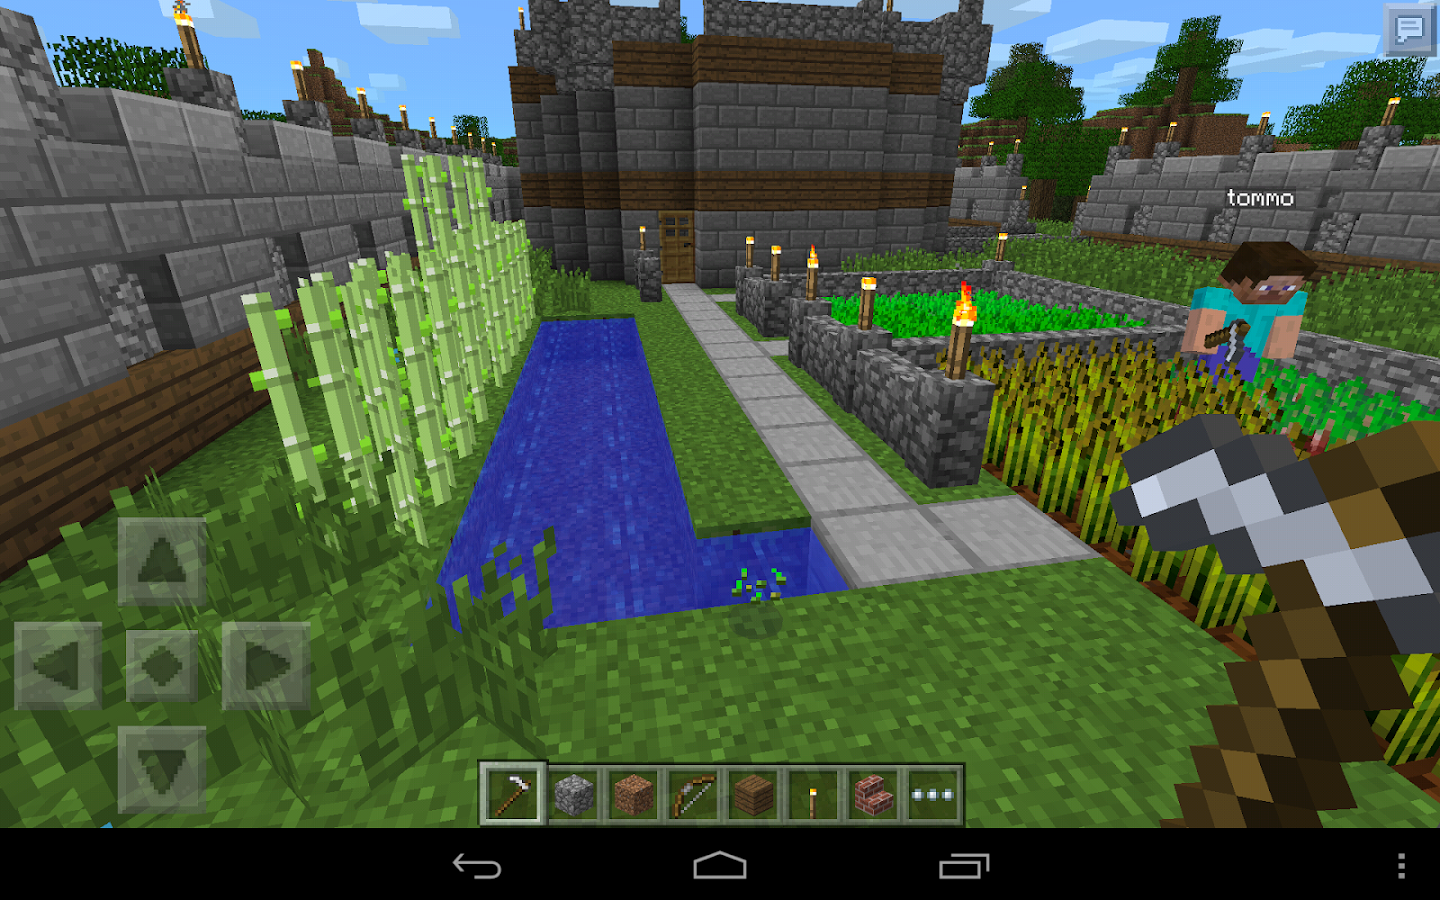 Minecraft Pocket Edition v0.12.1 build 9 APK